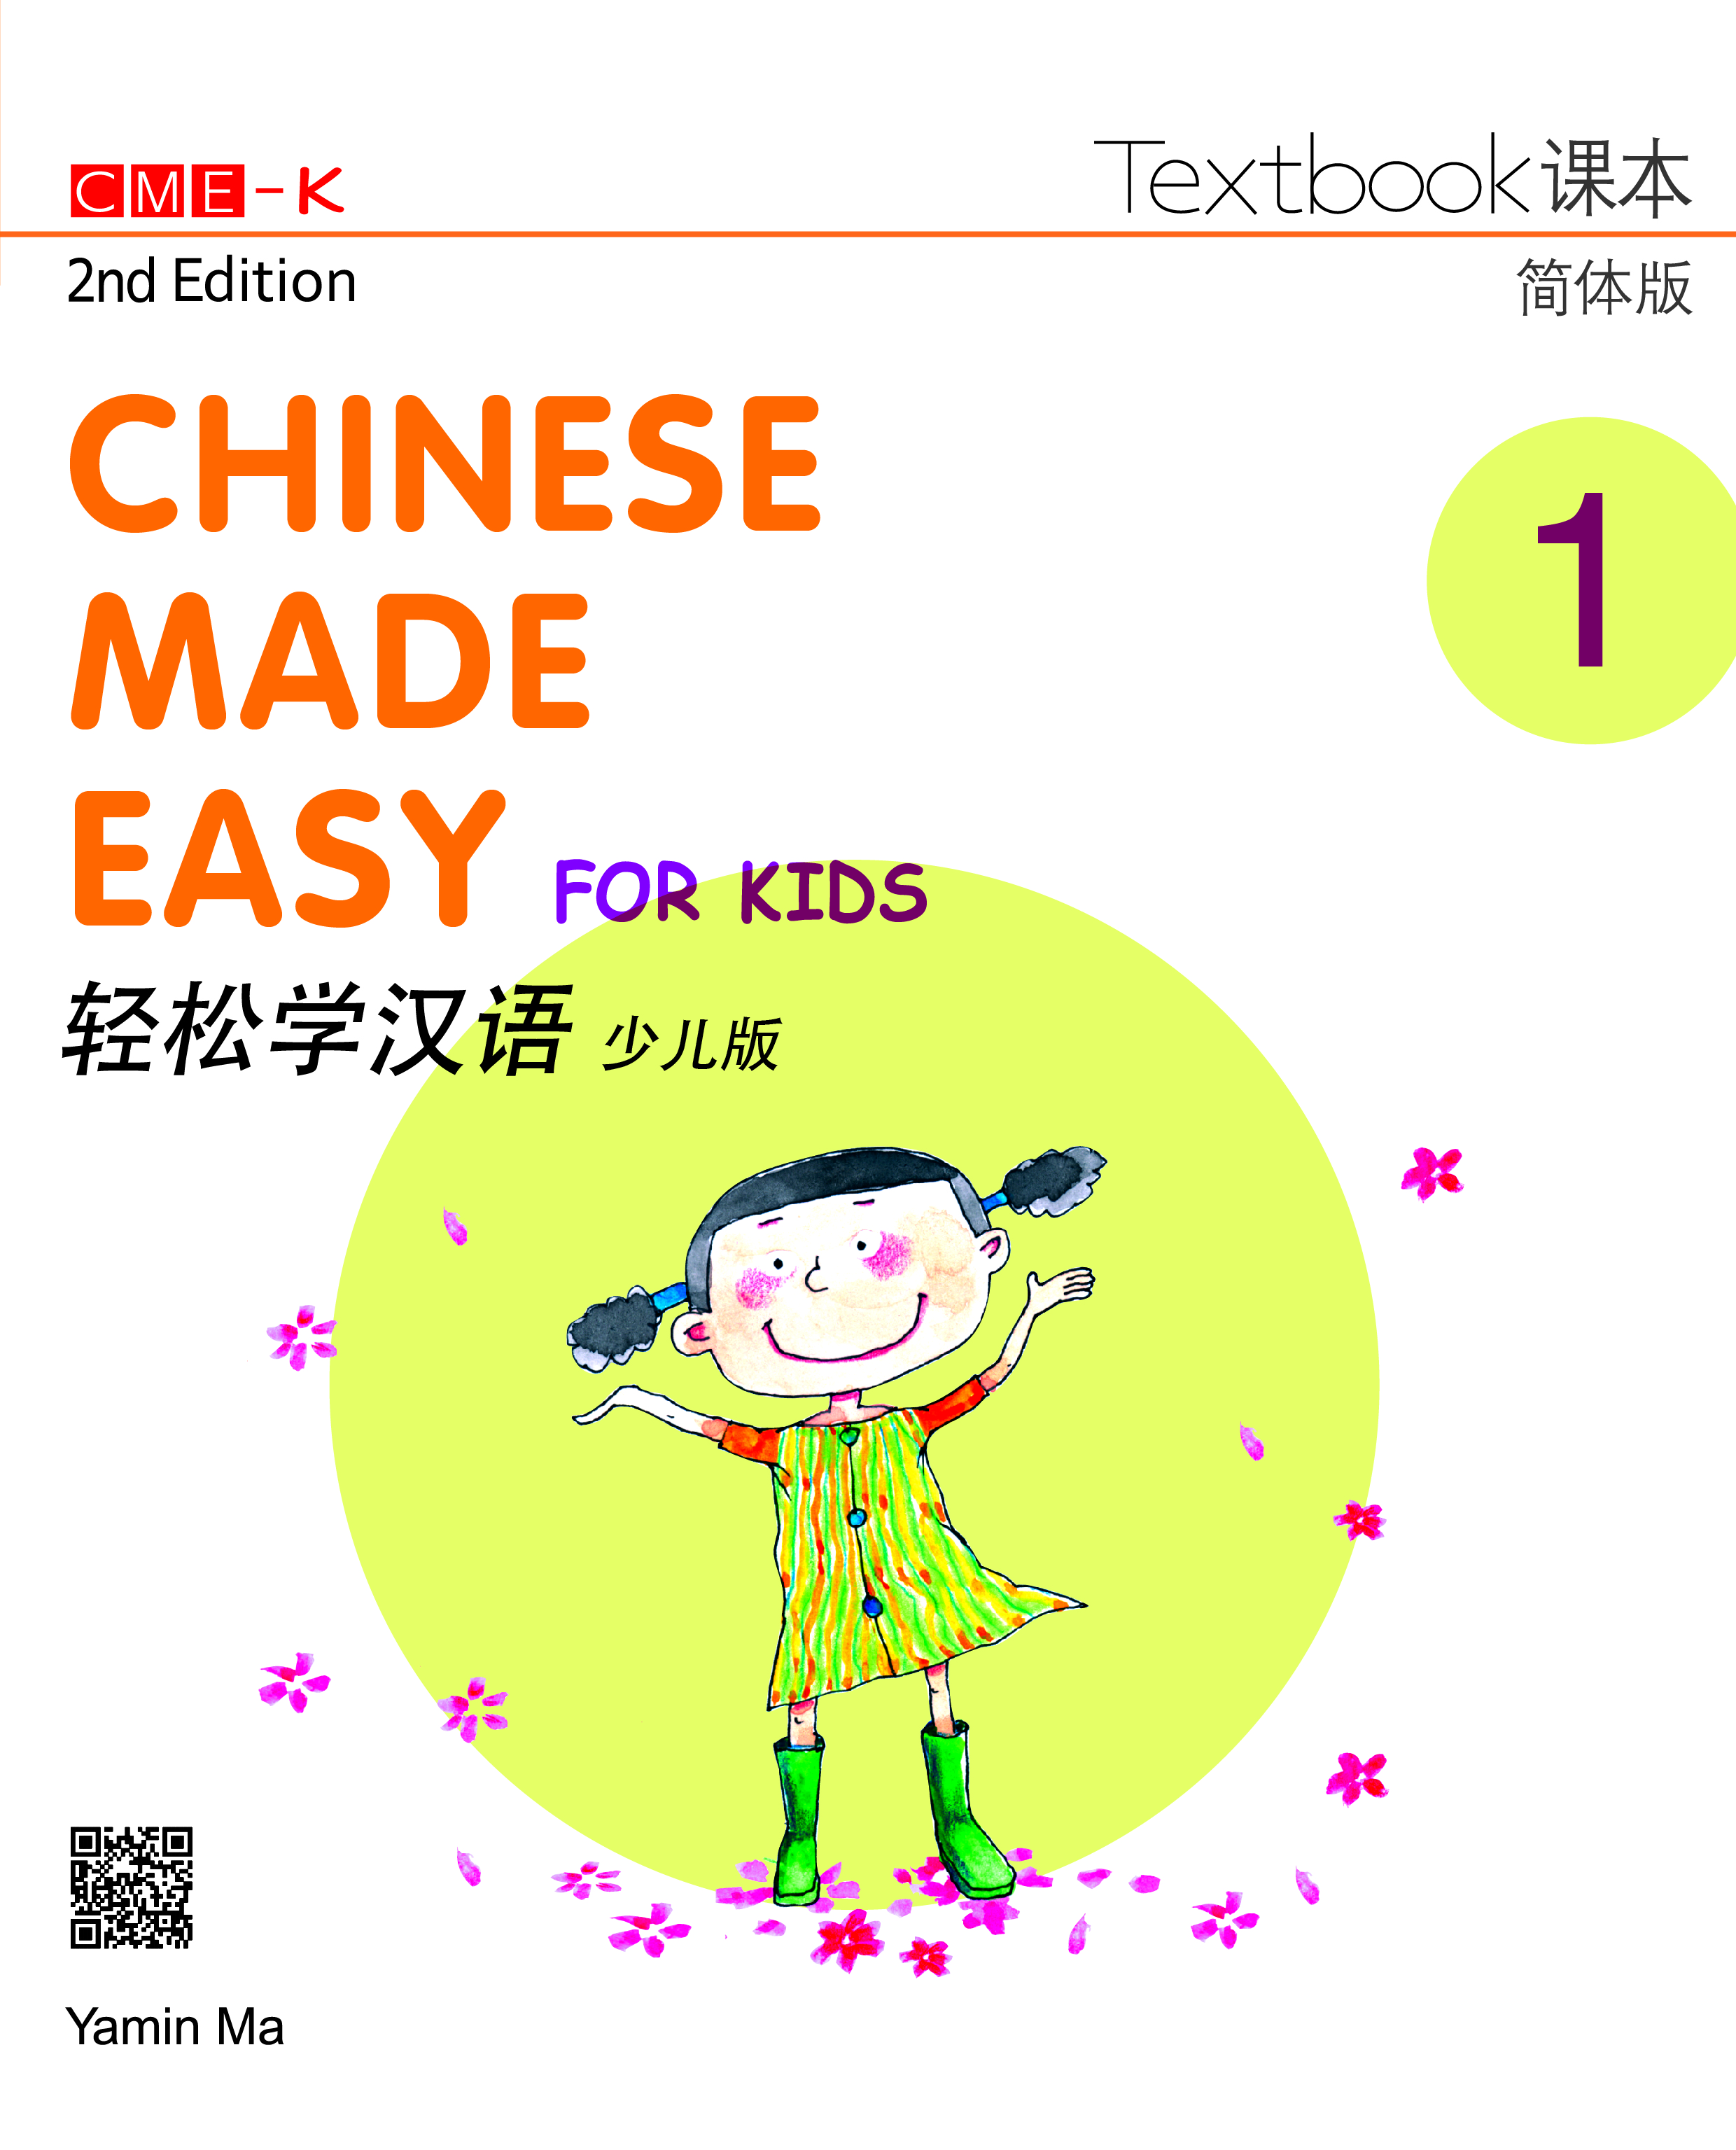 Chinese Made Easy for Kids Textbook 1, 2nd Ed (Simplified)   轻松学汉语少儿版课本1